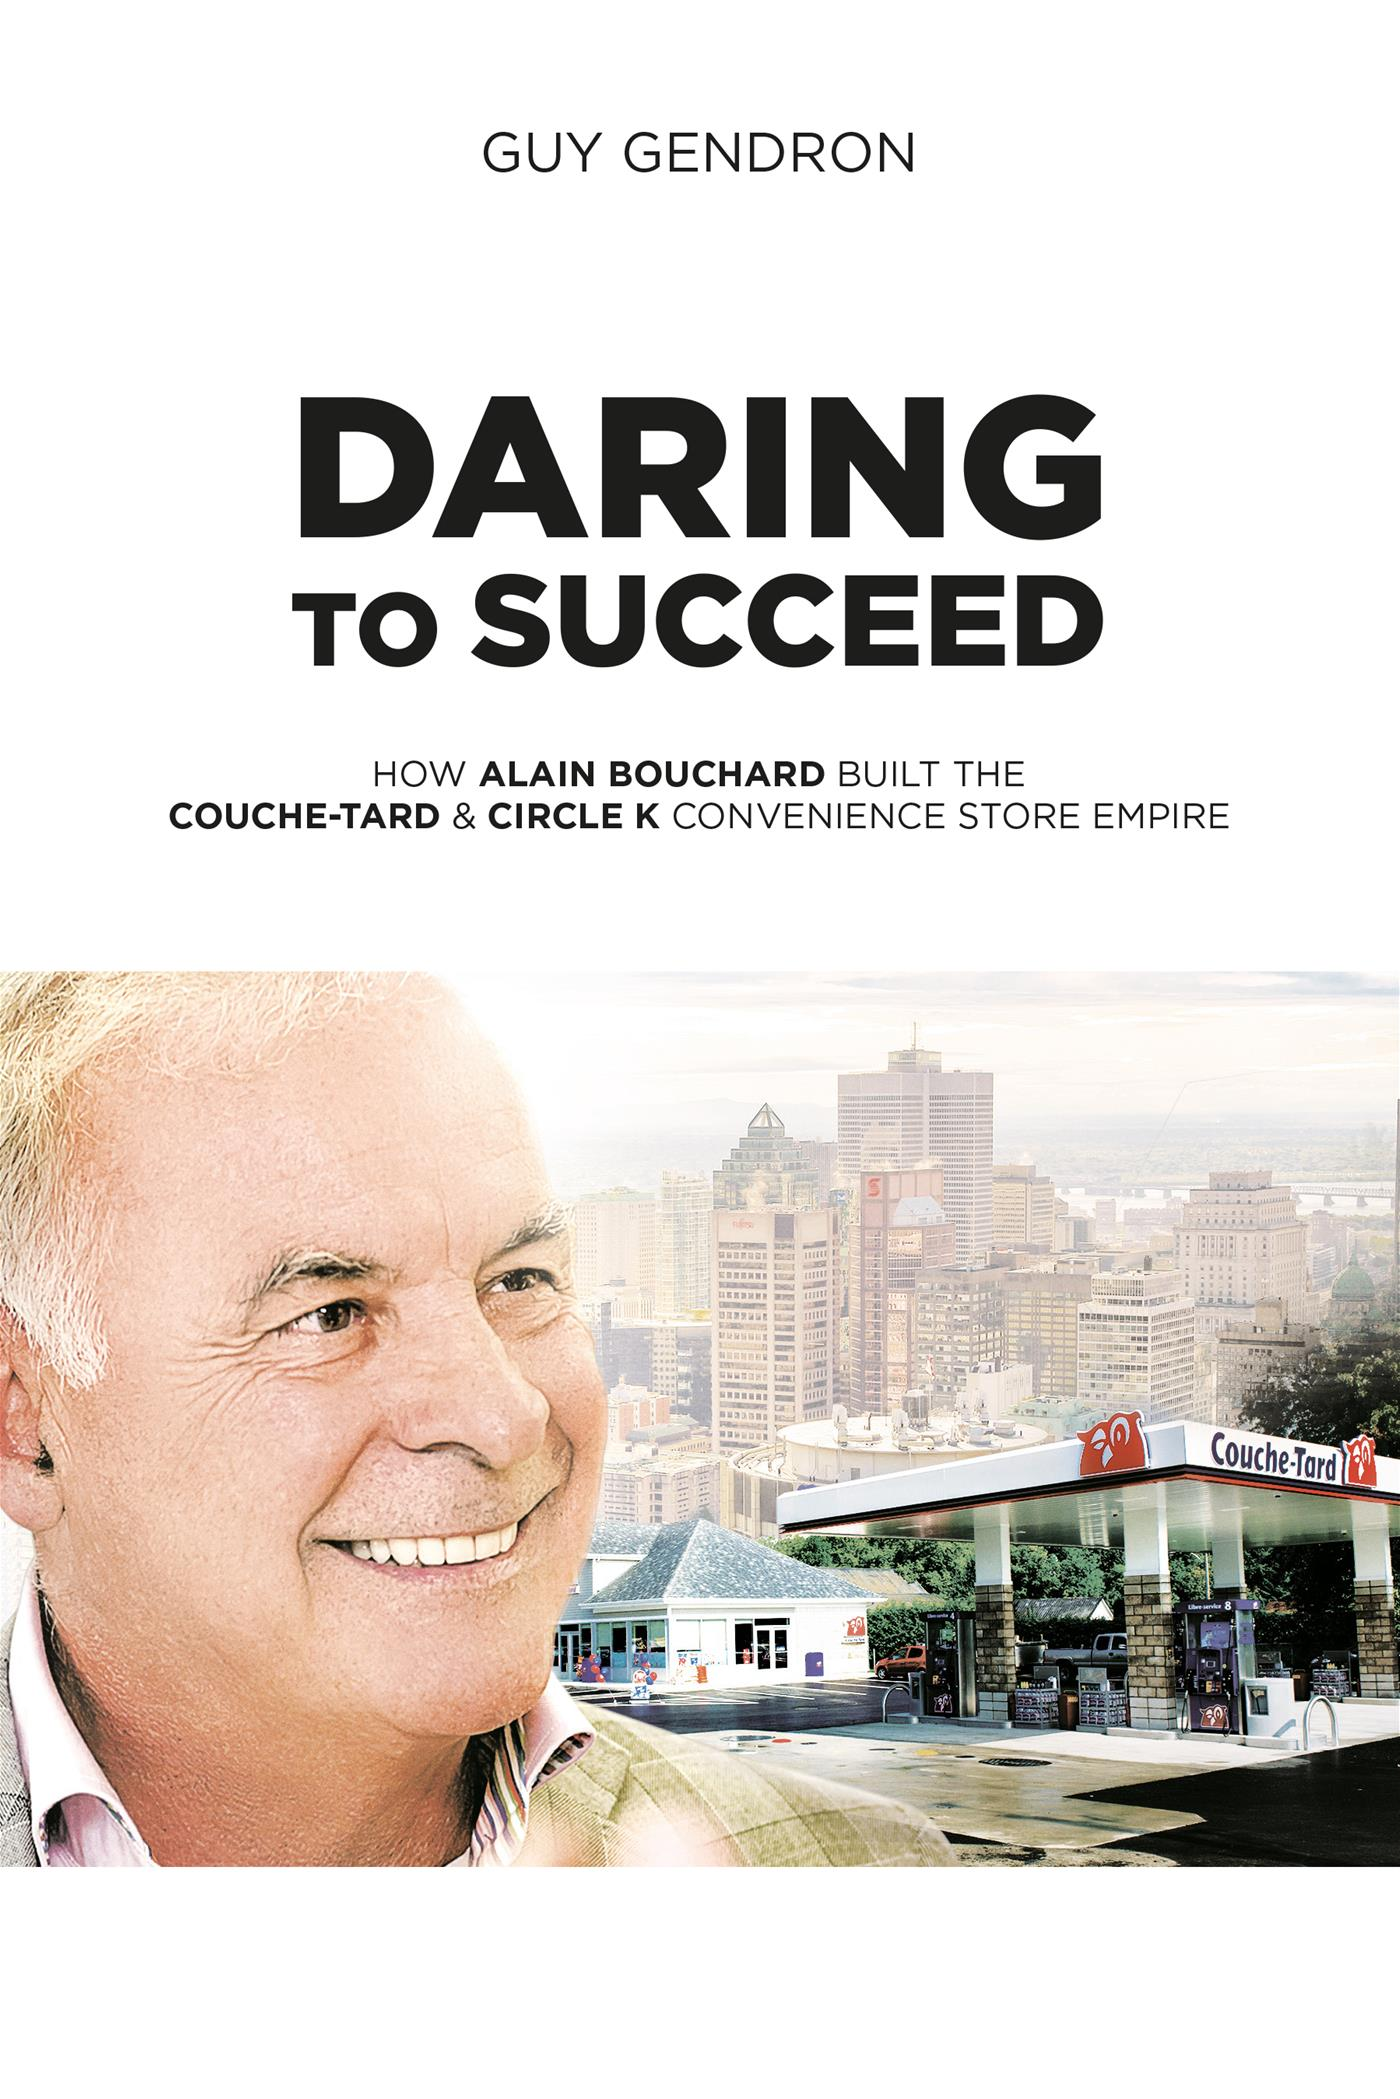 Daring to succed